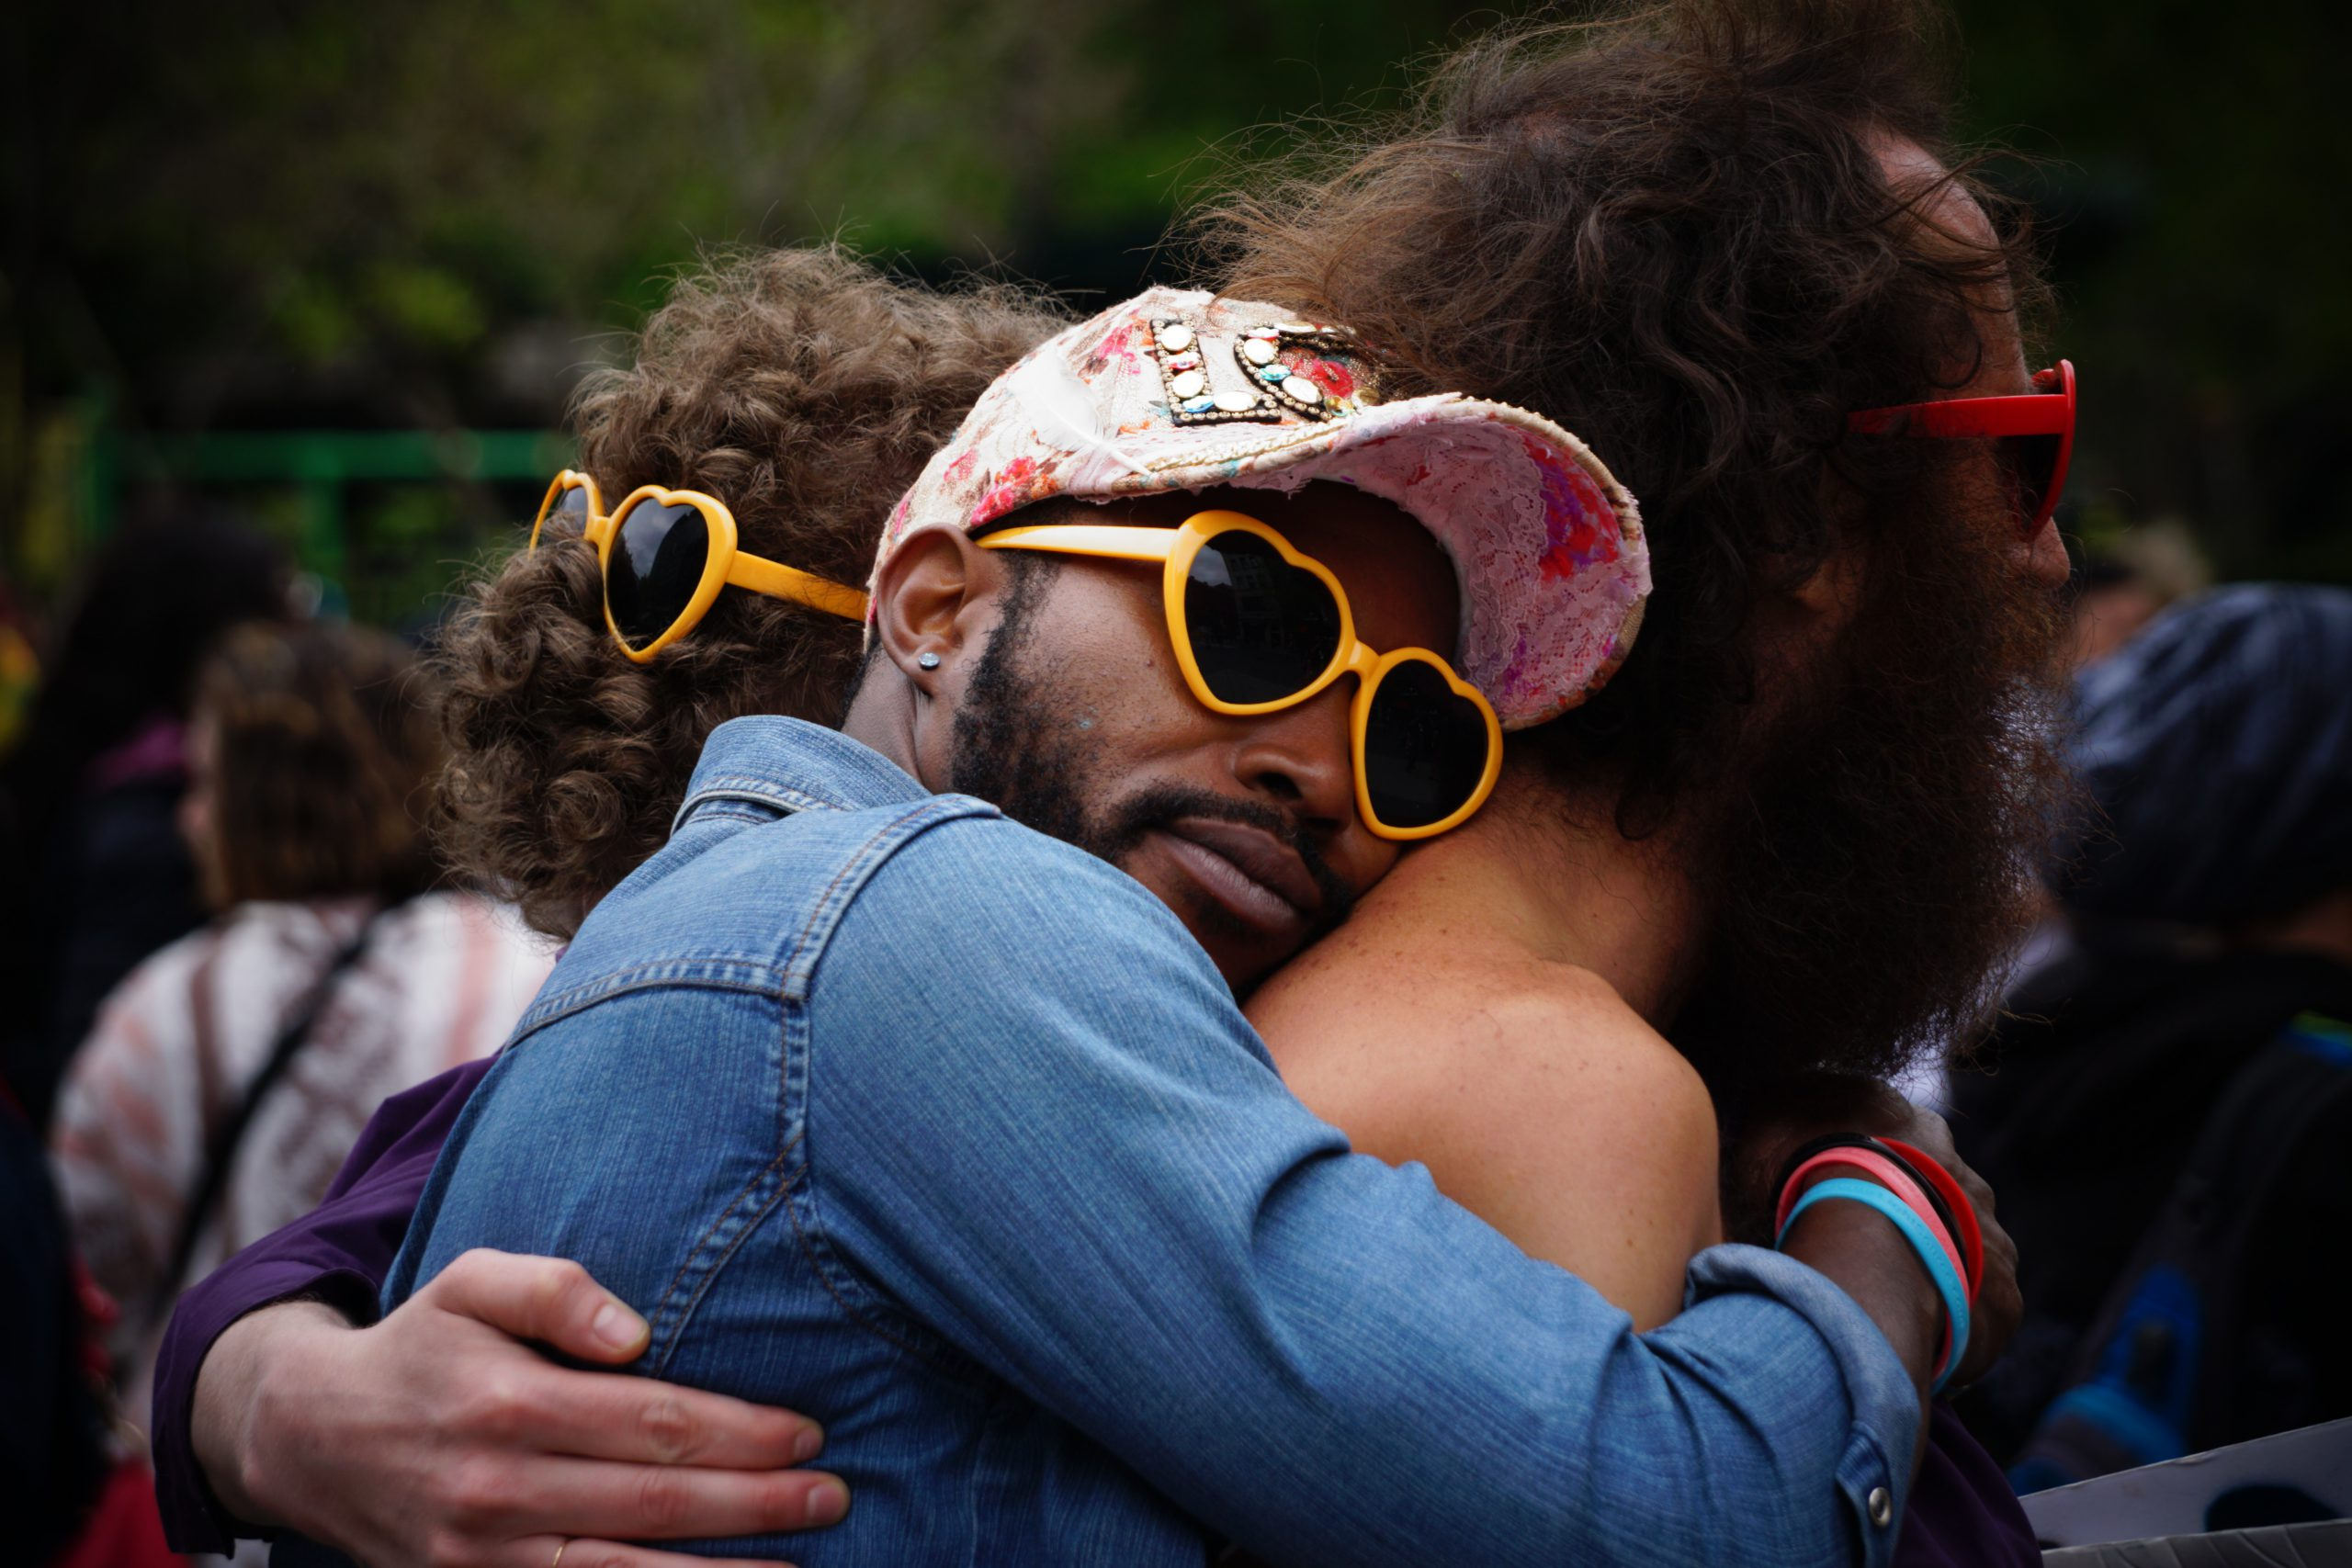 Guys hugging at festival